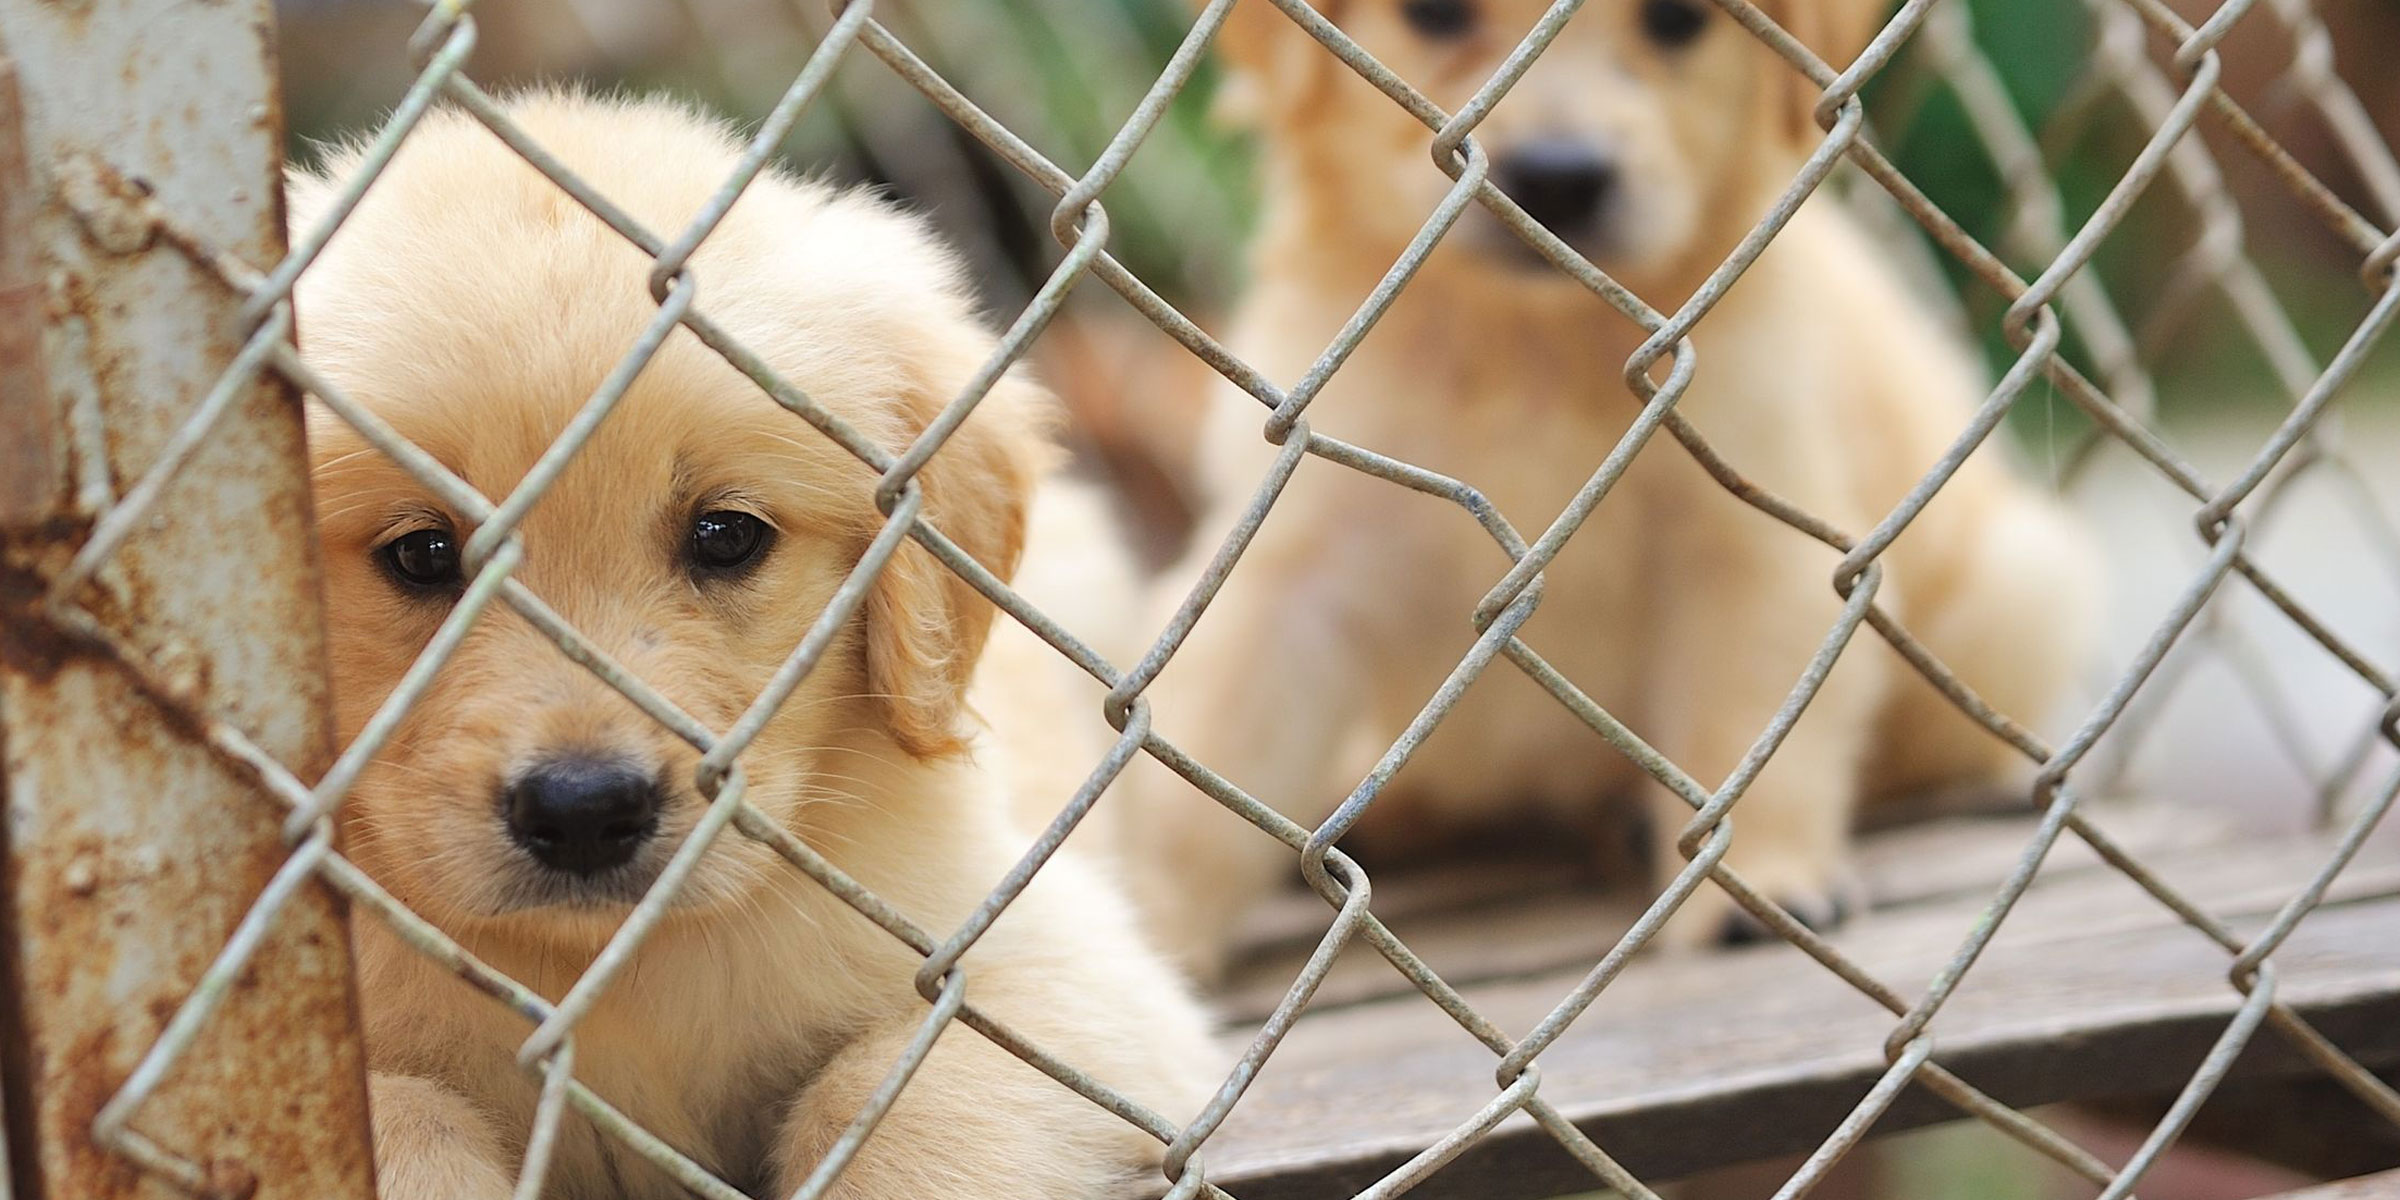 7 Signs Your Dog Came from a Puppy Mill—And Why Puppy Mills Are Totally Inhumane